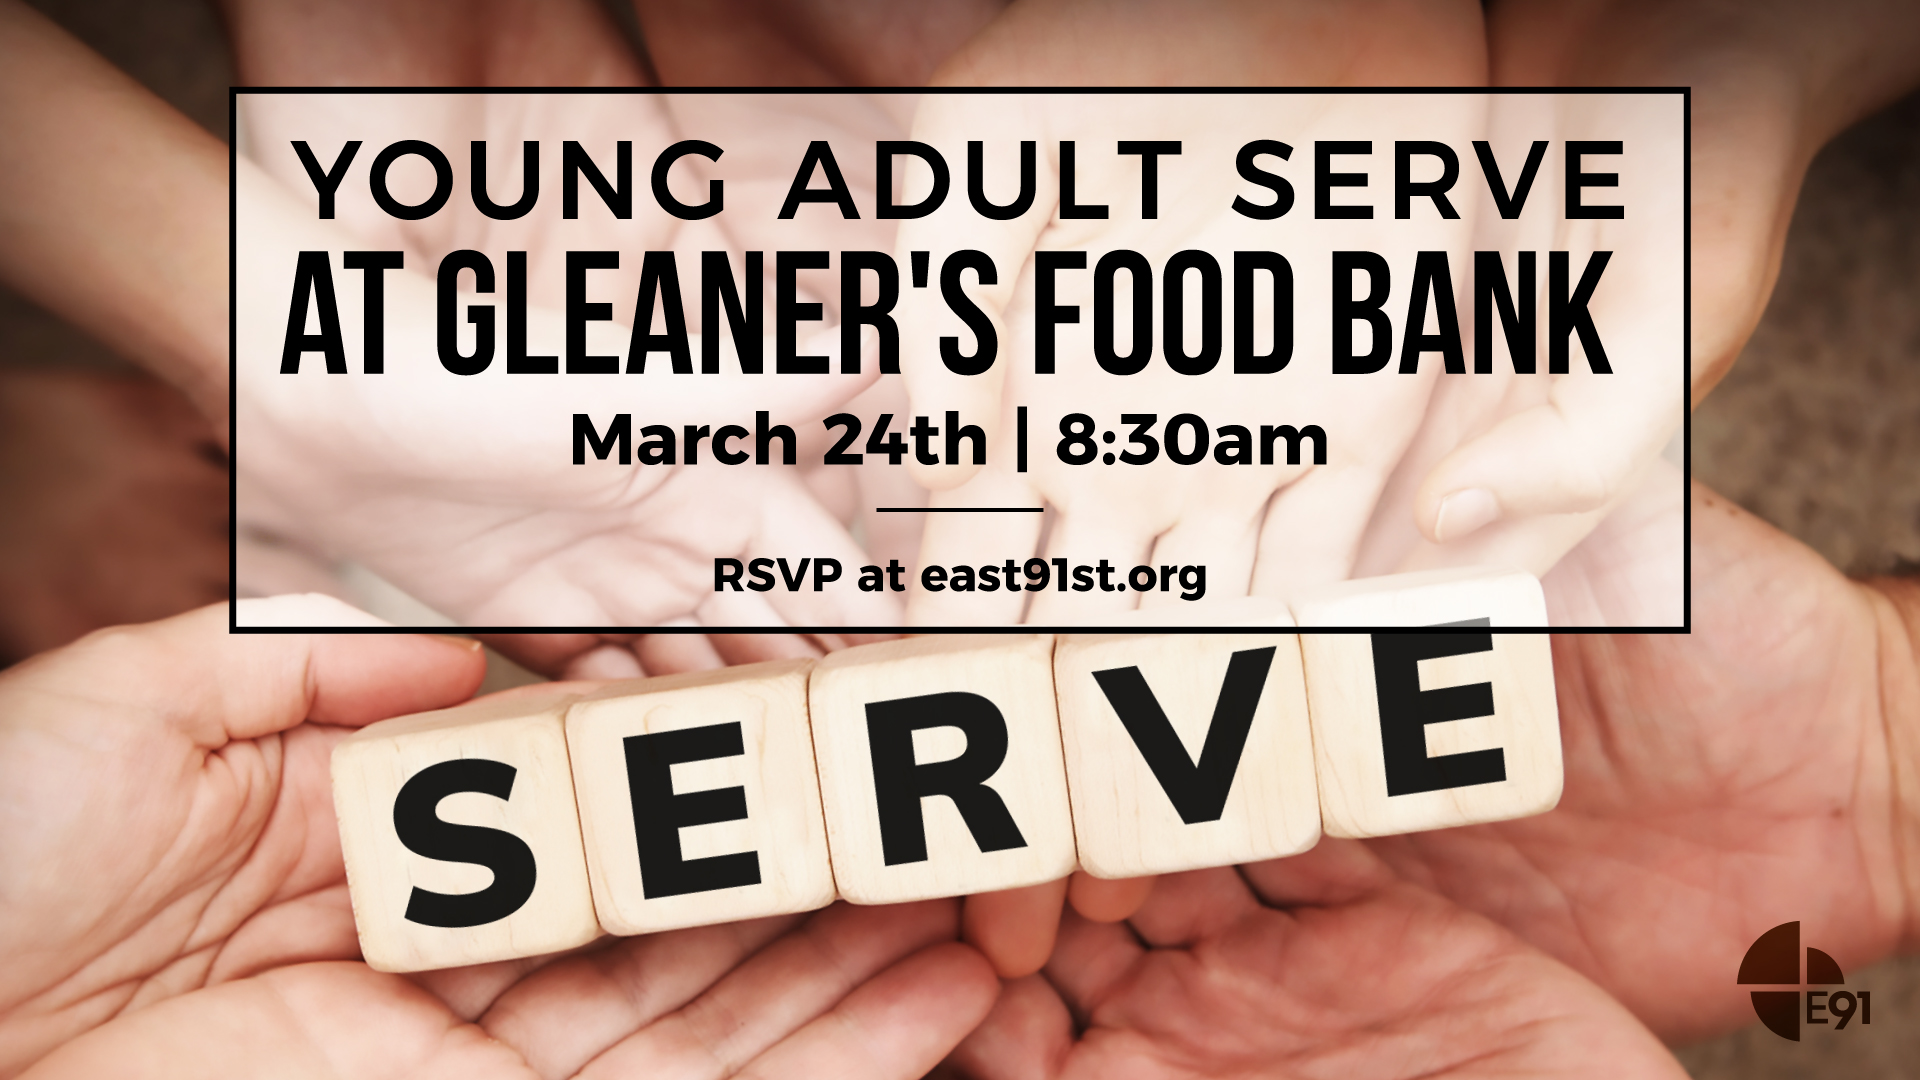 178510 young adult serve gleaners scn 013118